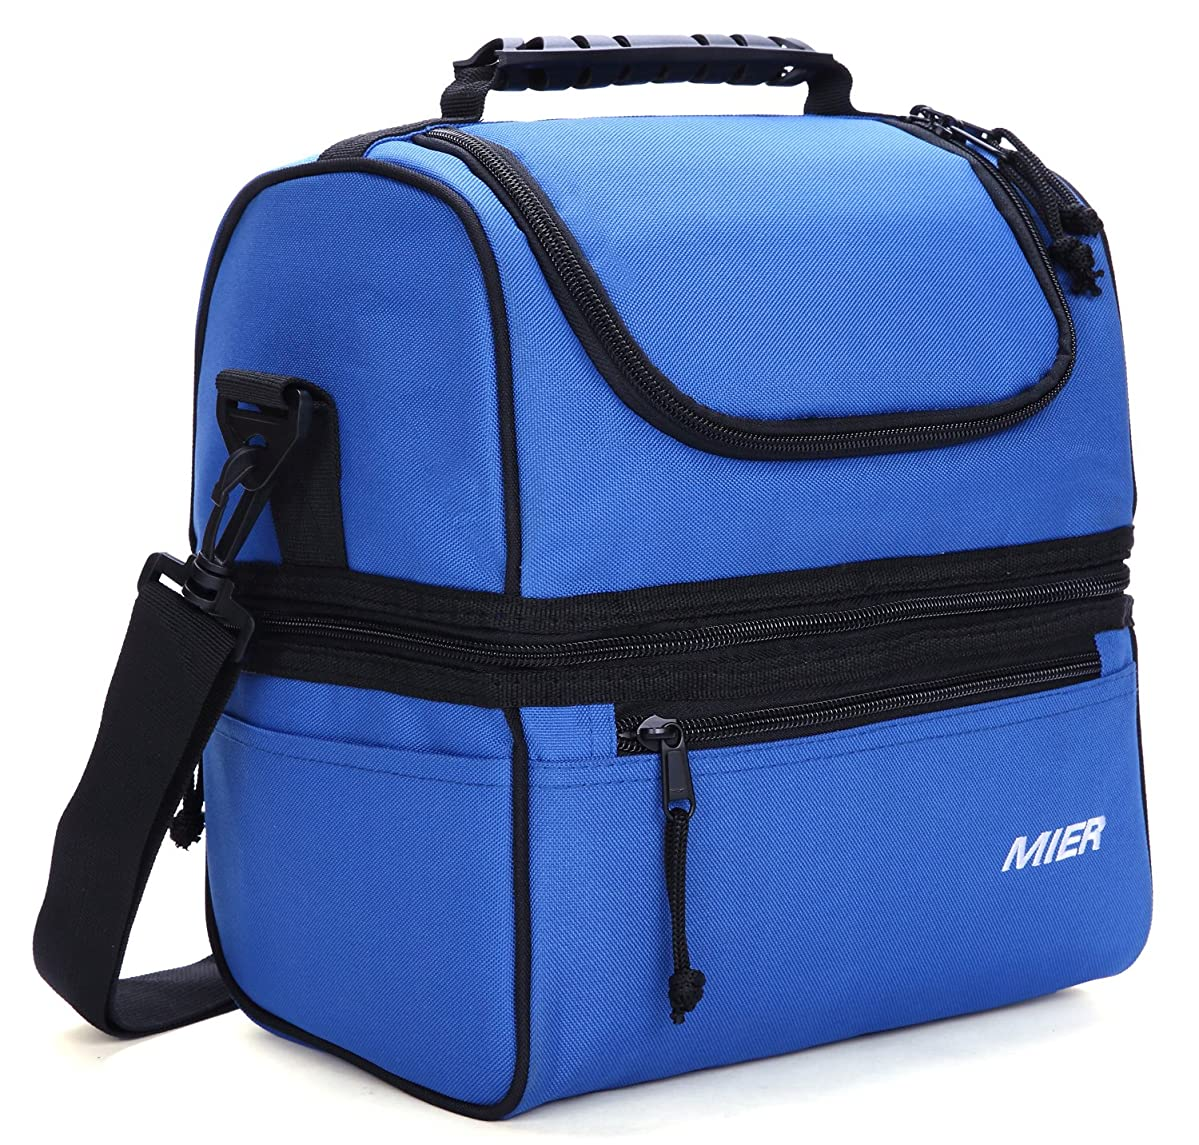 MIER Adult Lunch Box Insulated Lunch Bag Large Cooler Tote Bag for Men, Women, Double Deck Cooler(Navy Blue)